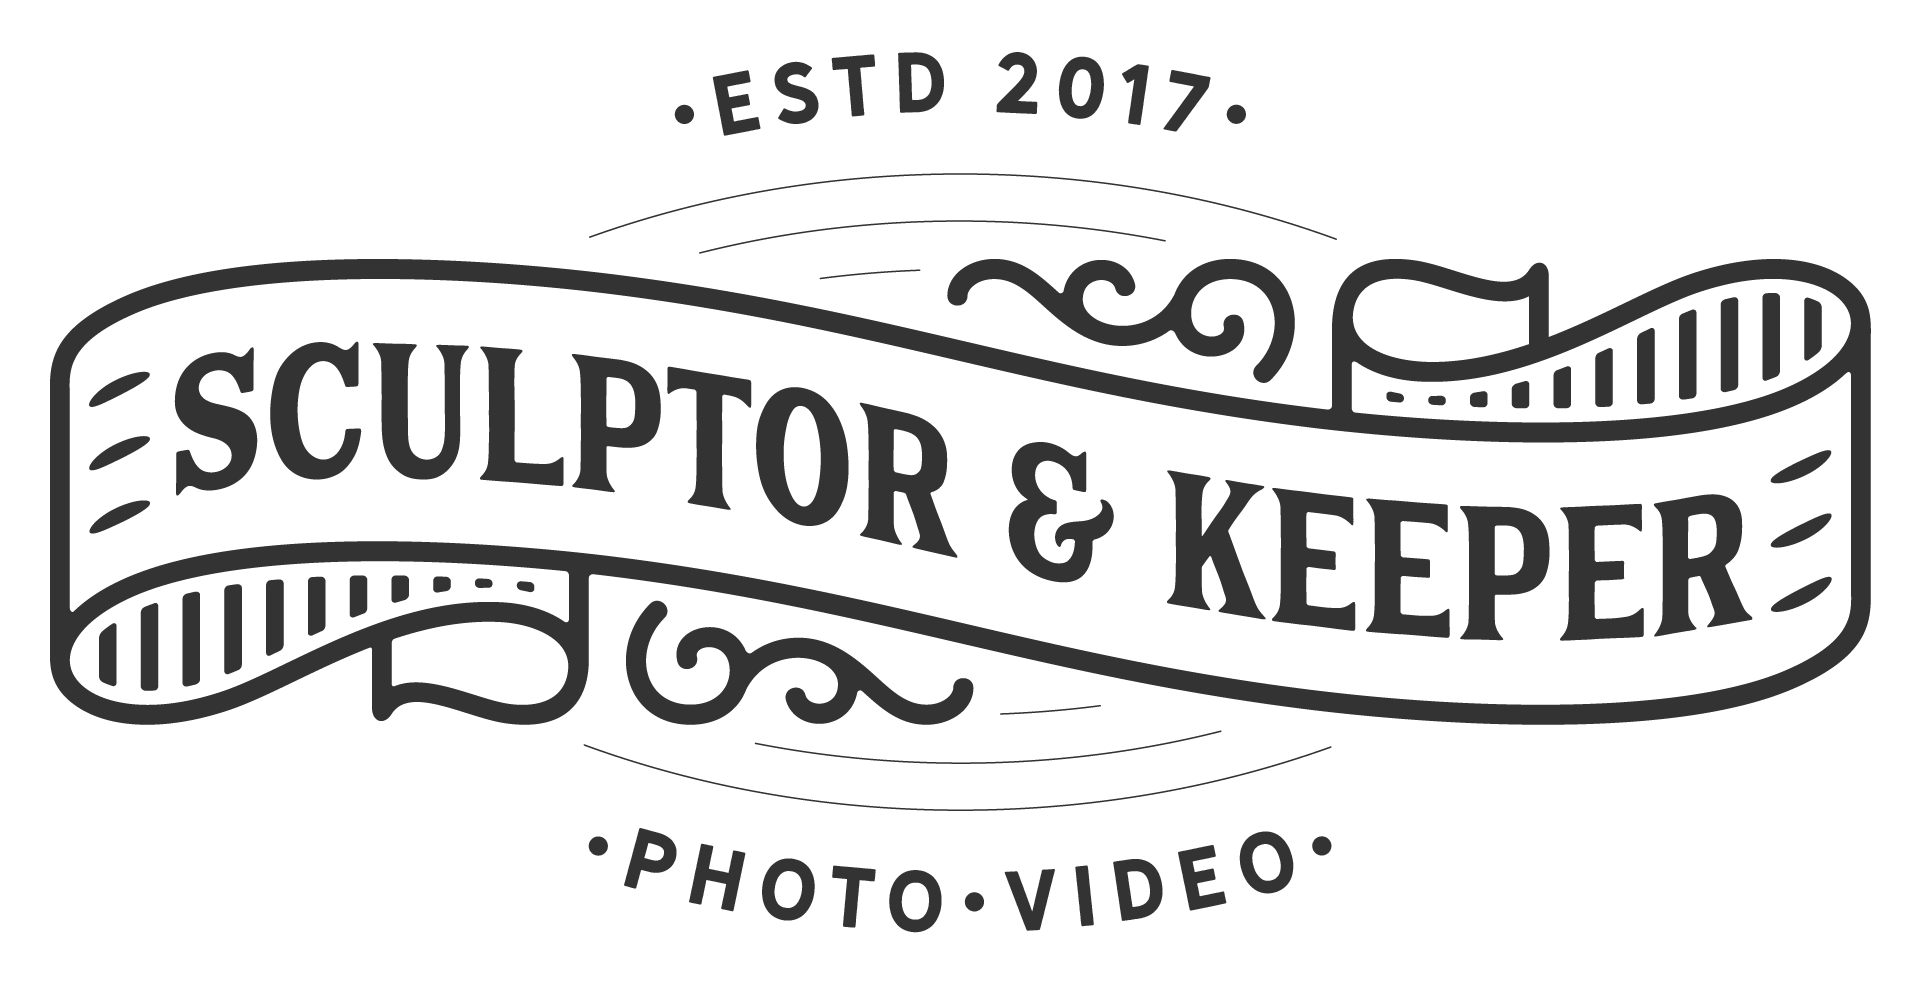 The logo of Sculptor & Keeper.